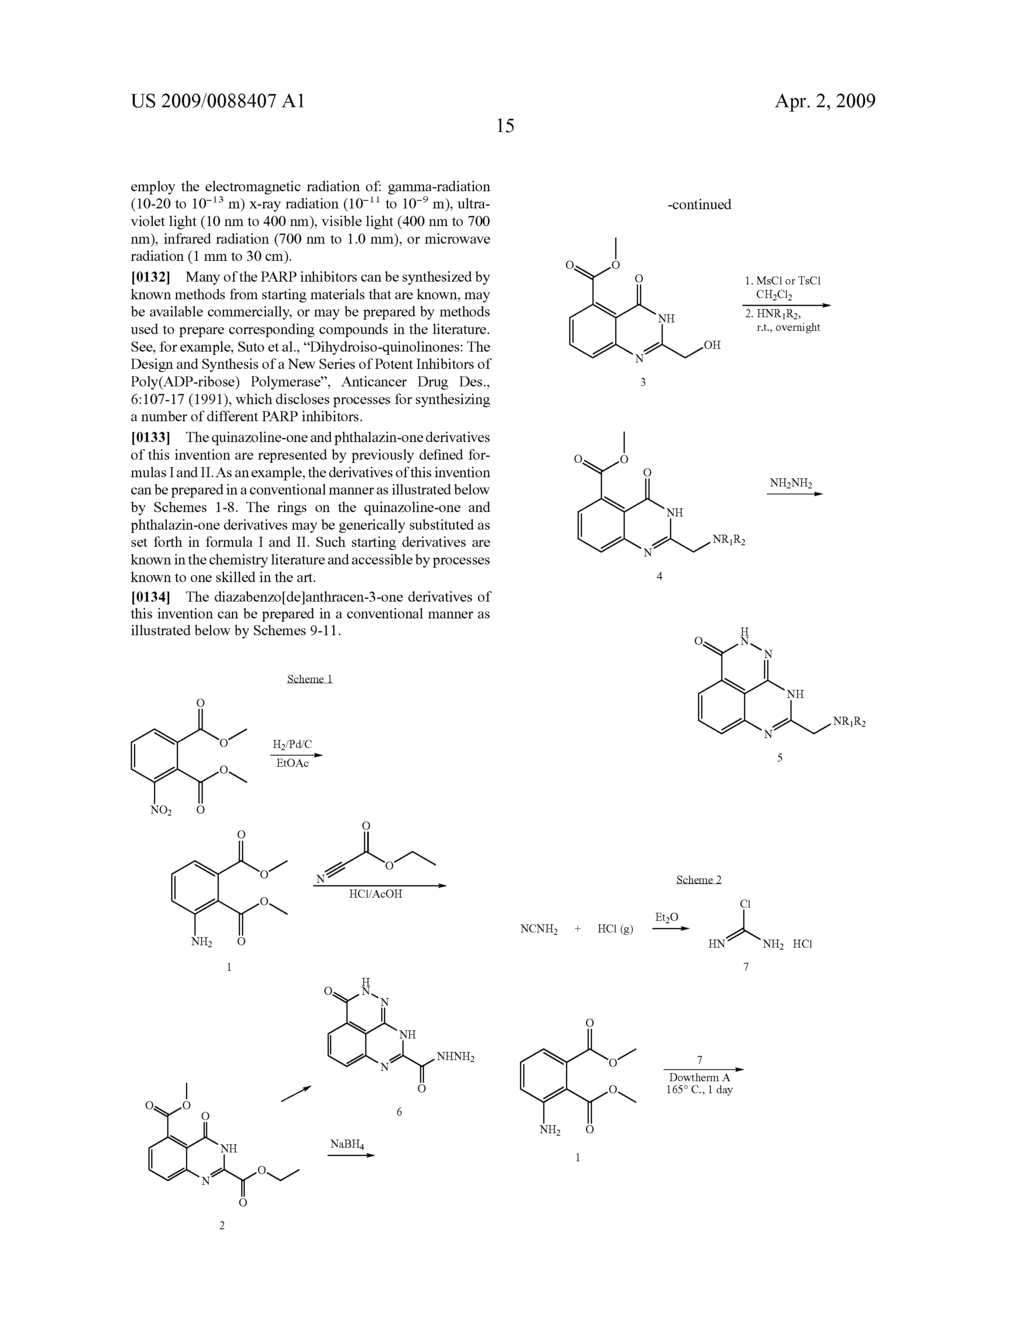 COMPOUNDS, METHODS AND PHARMACEUTICAL COMPOSITIONS FOR INHIBITING PARP - diagram, schematic, and image 17